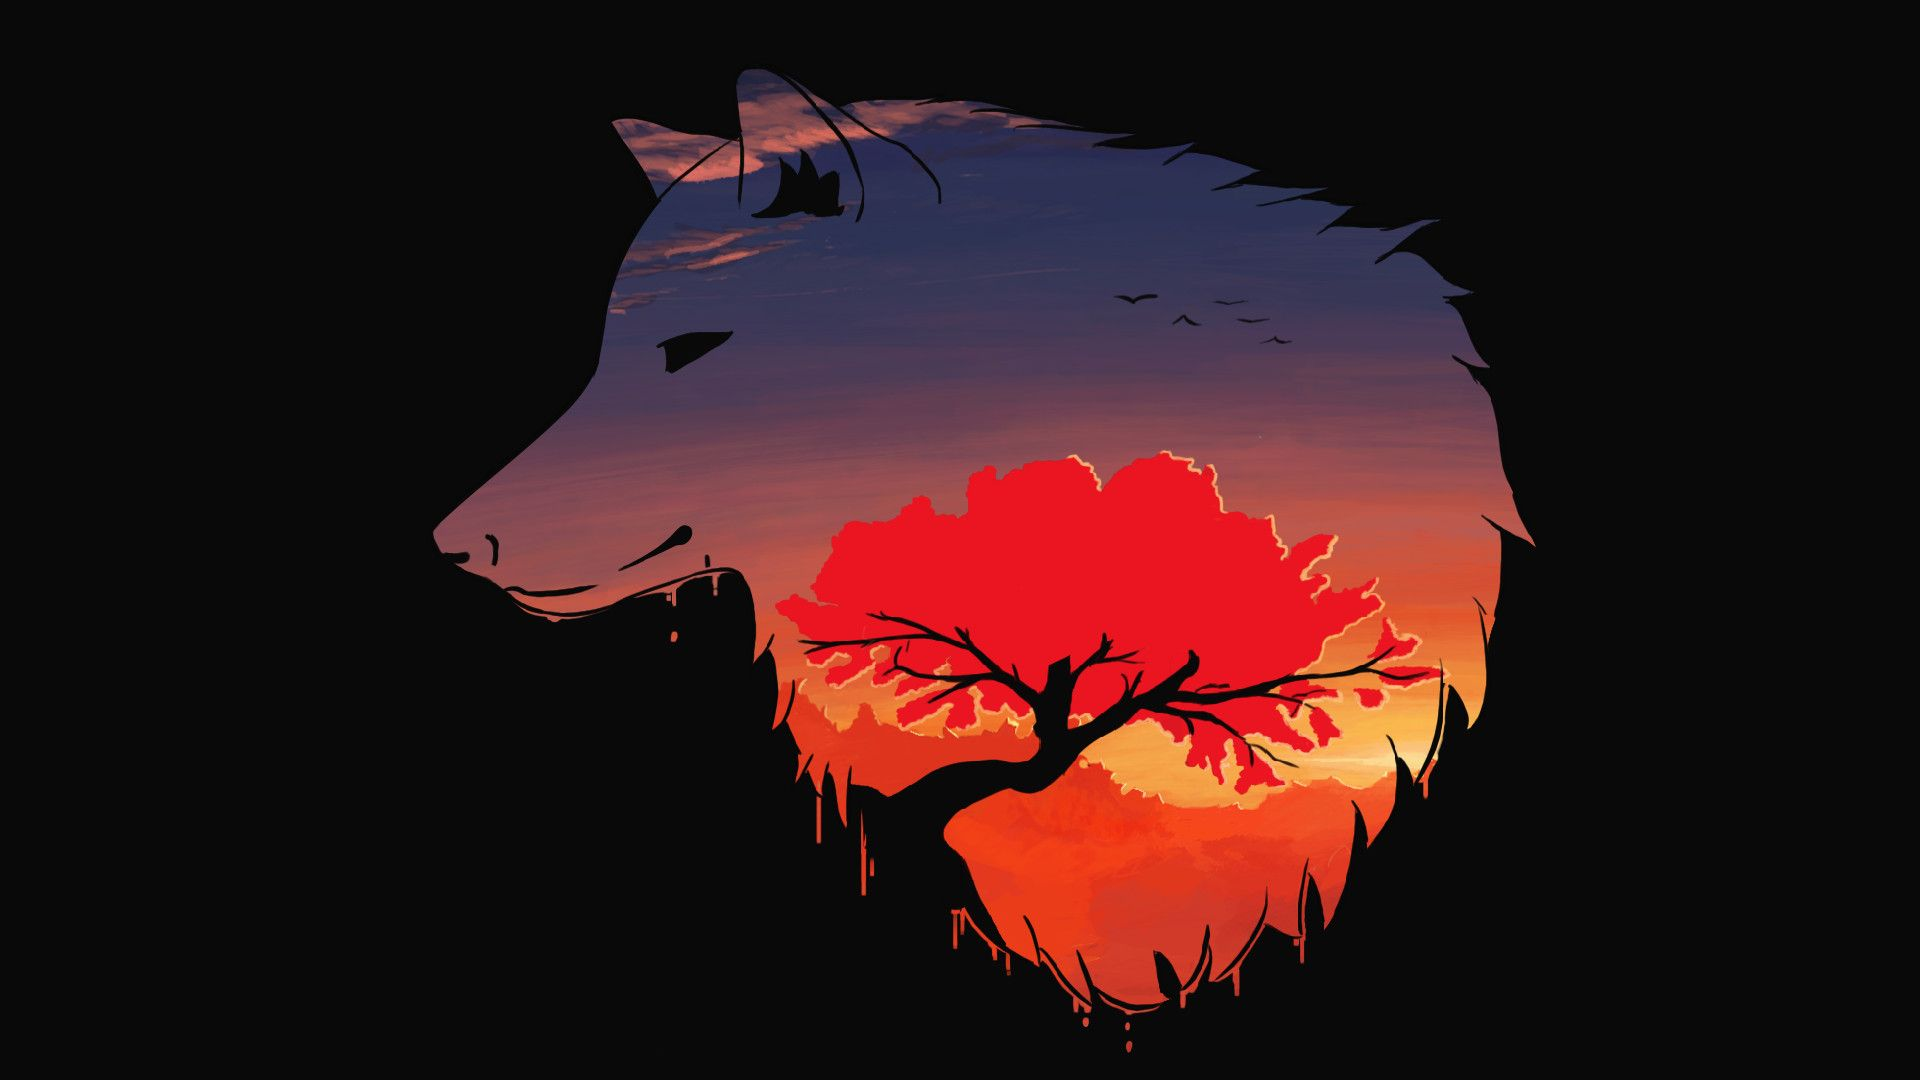 Minimalist Wolf Wallpapers Top Free Minimalist Wolf Backgrounds Wallpaperaccess